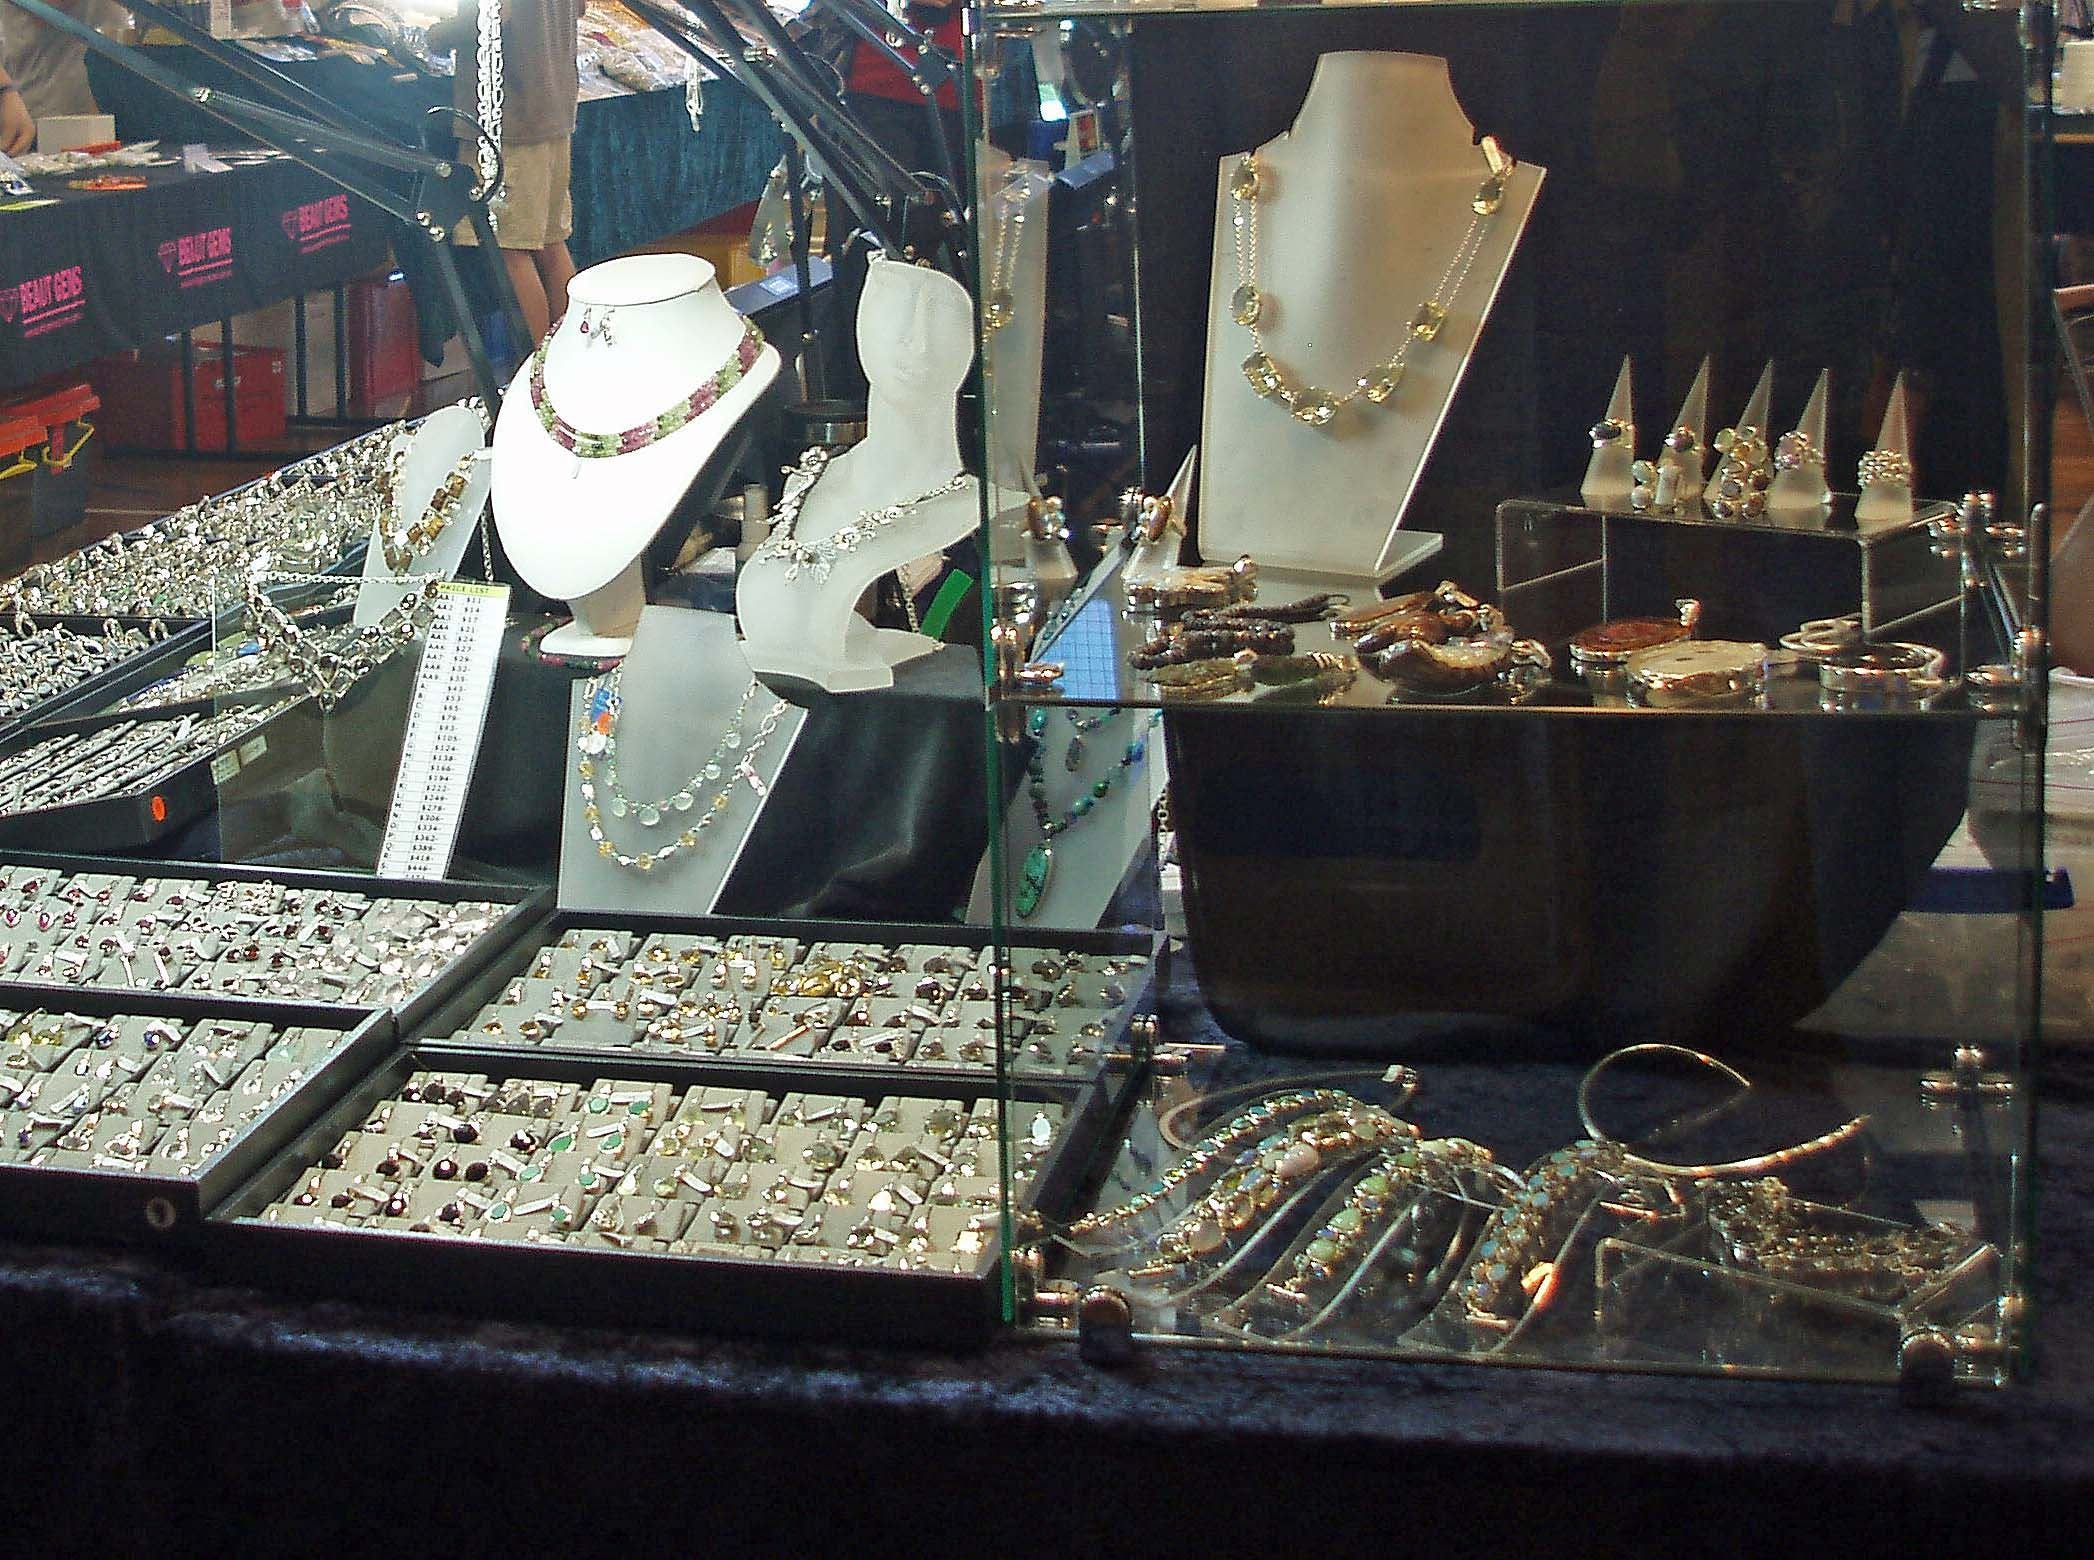 Toowoomba Gemfest - Gems and Jewellery - Tourism Cairns